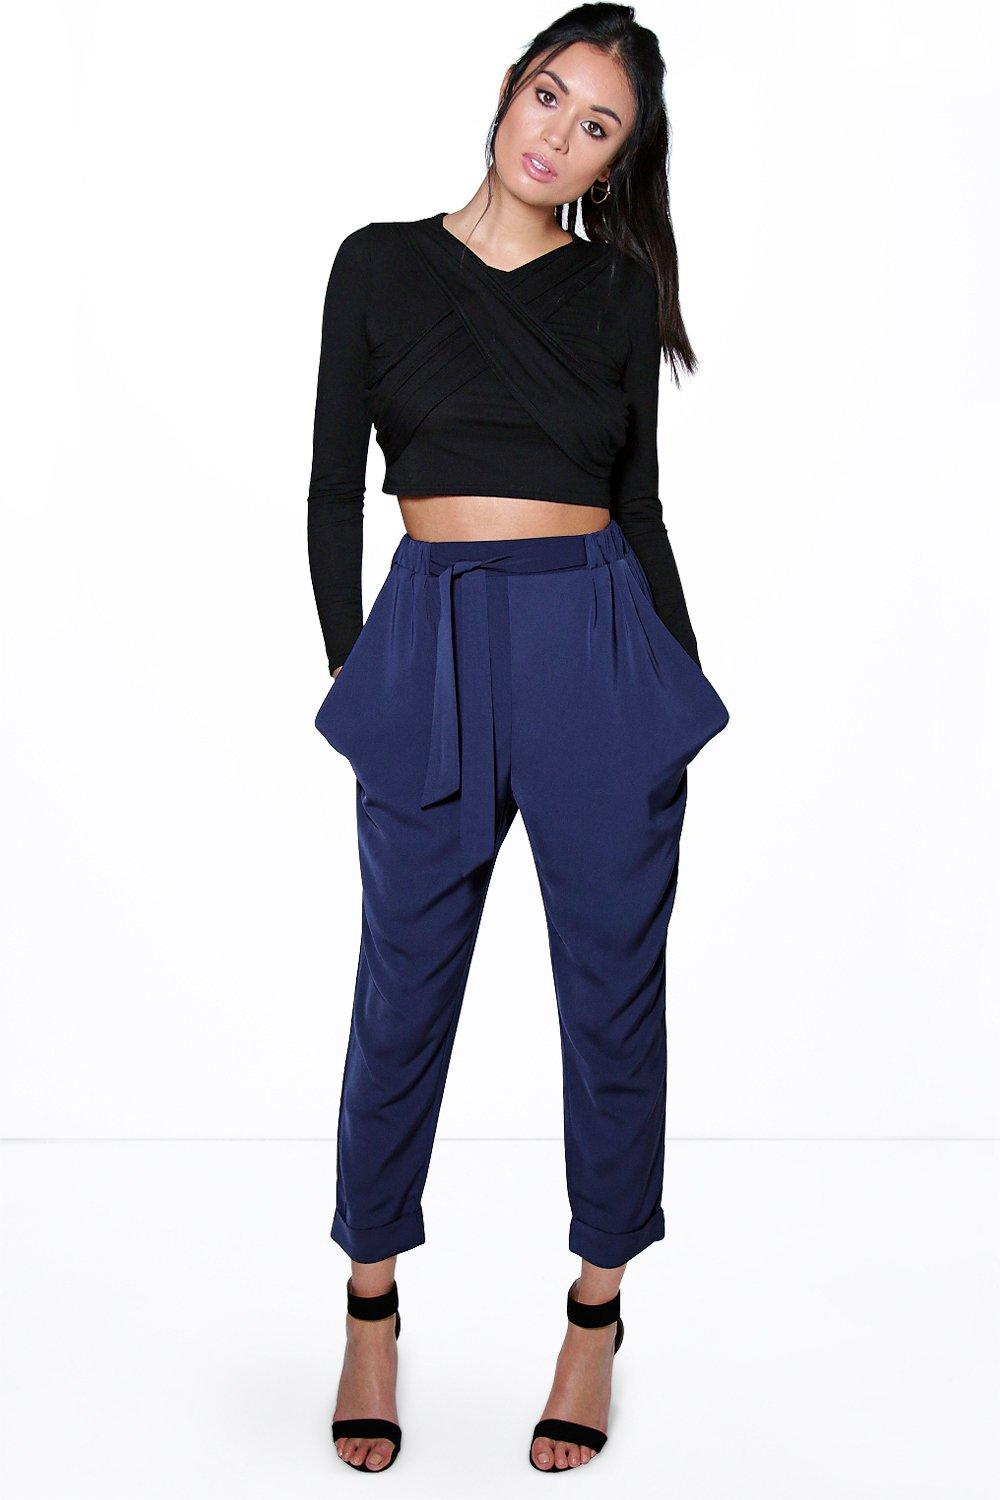 Alani Turn Up Tie Waist Cargo Trousers